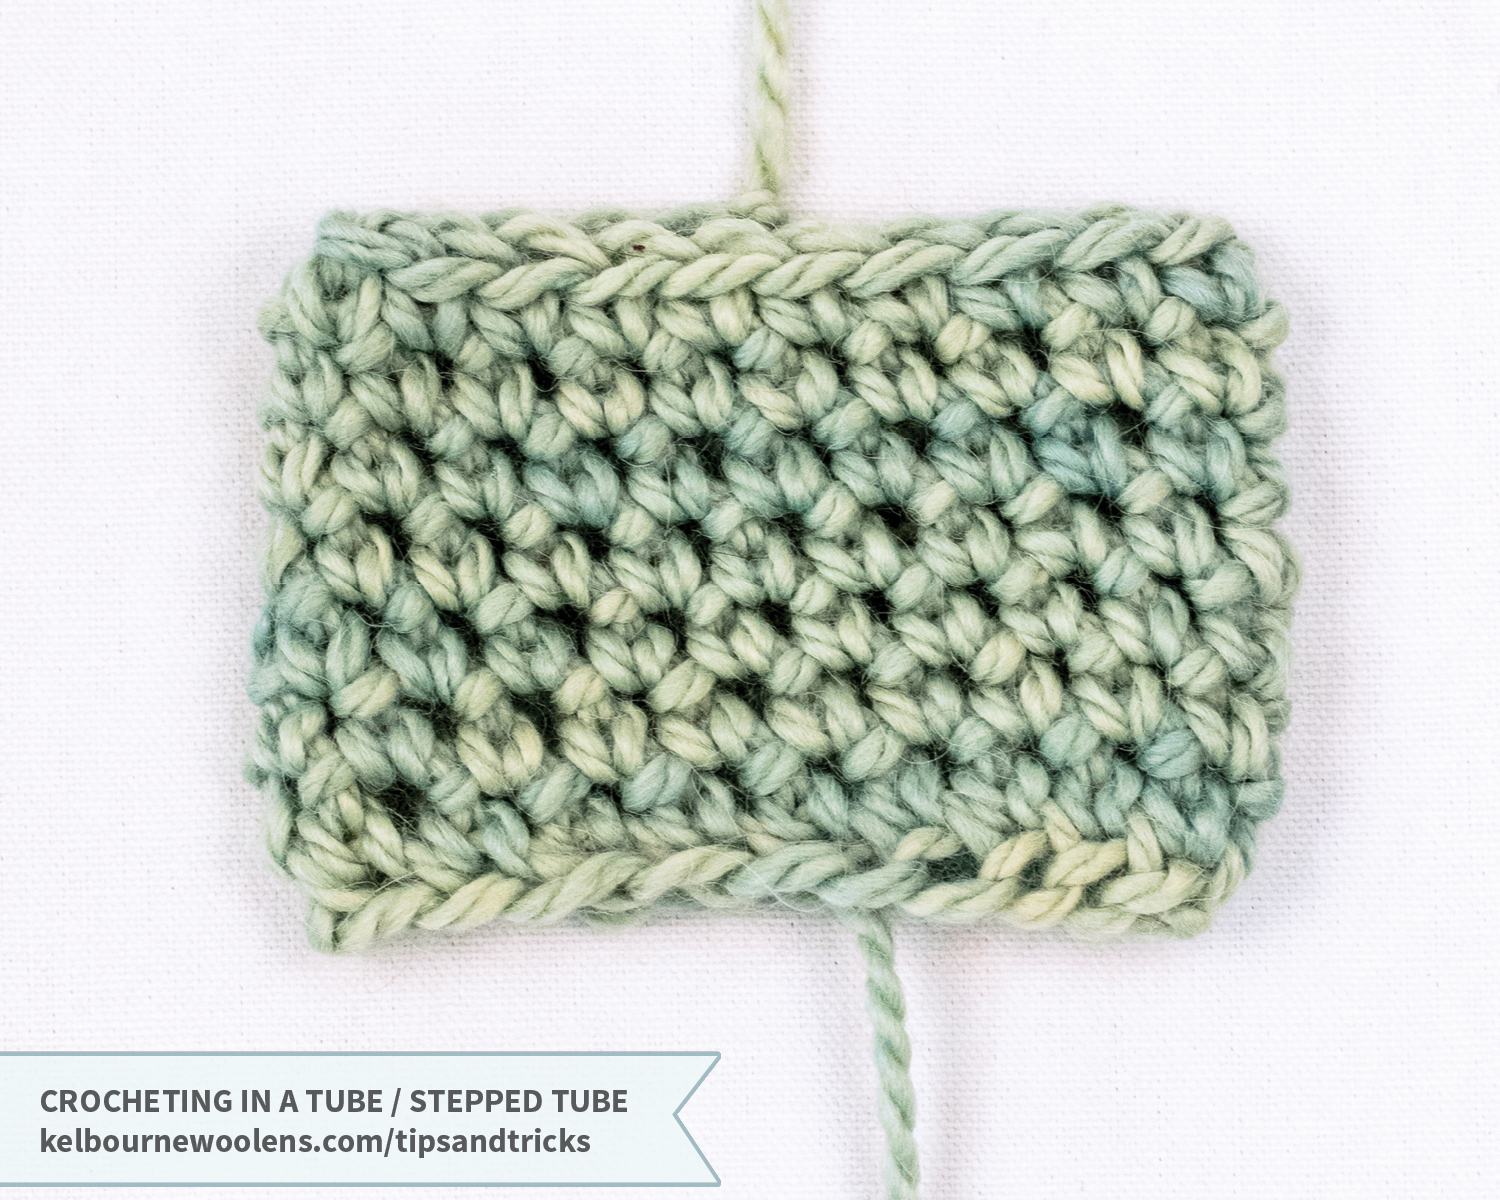 KW Tips and Tricks: Crocheting in a Tube / Stepped